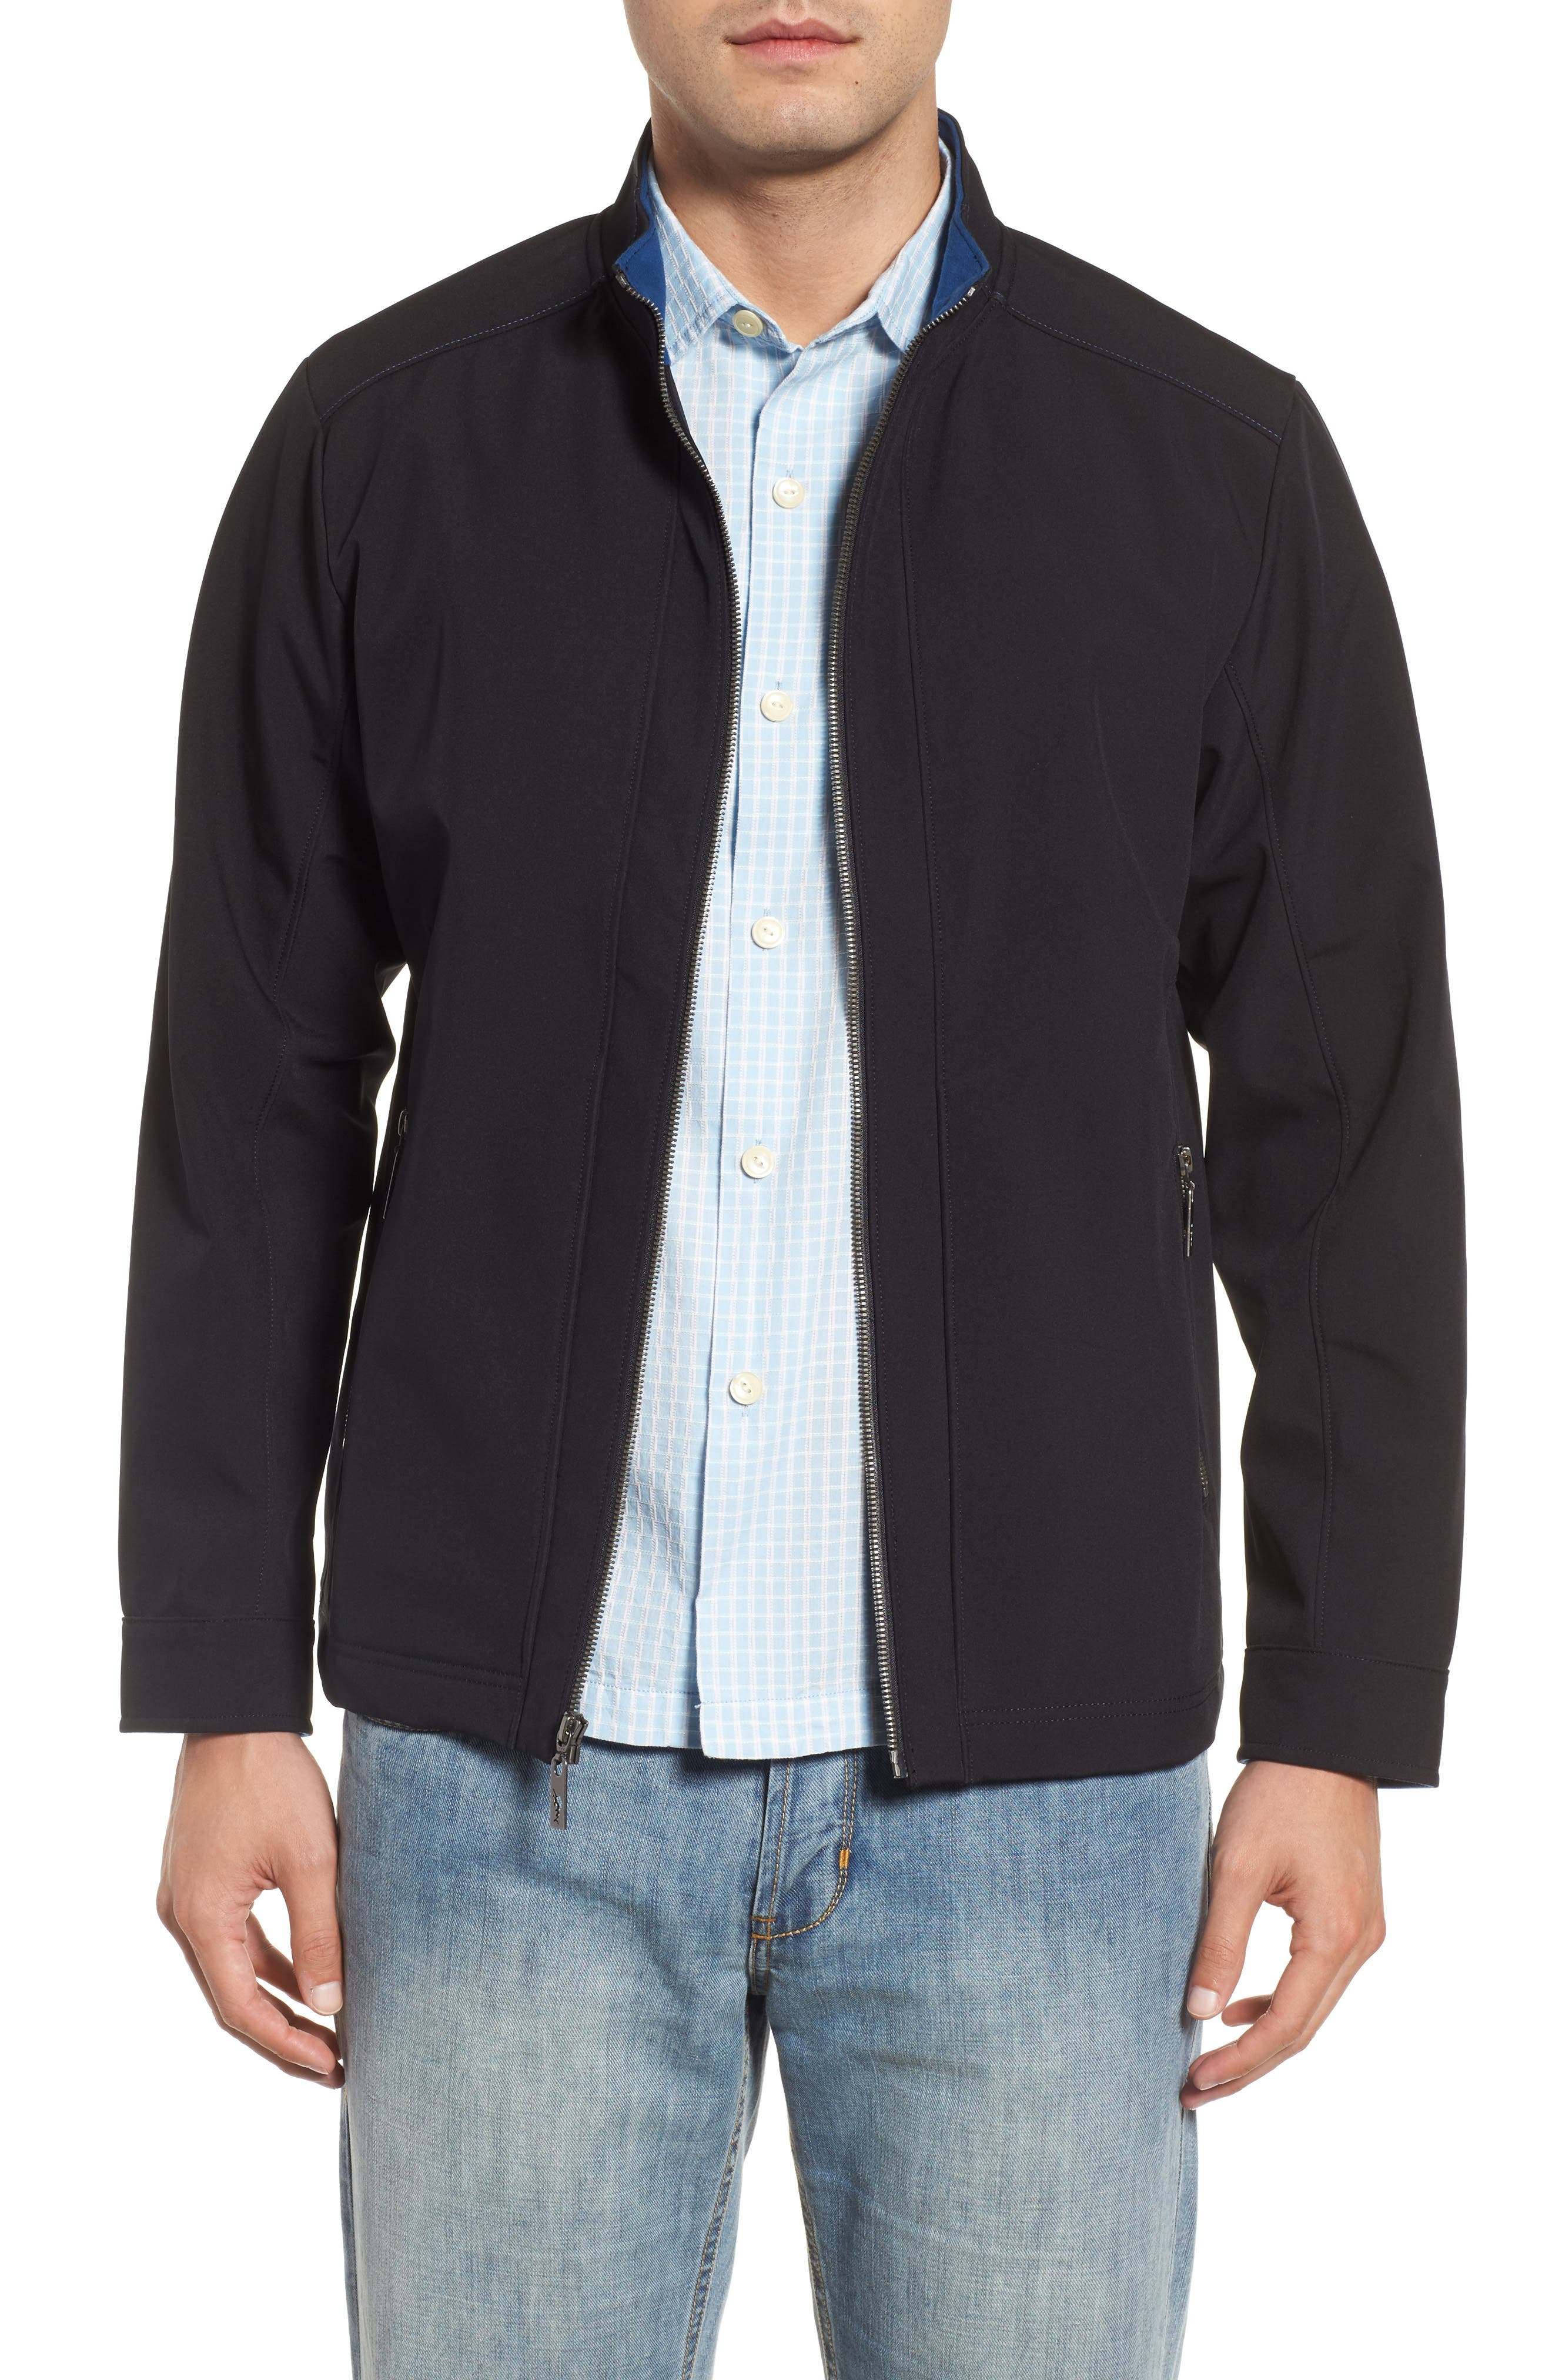 Main Image - Tommy Bahama Downswing Zip Jacket